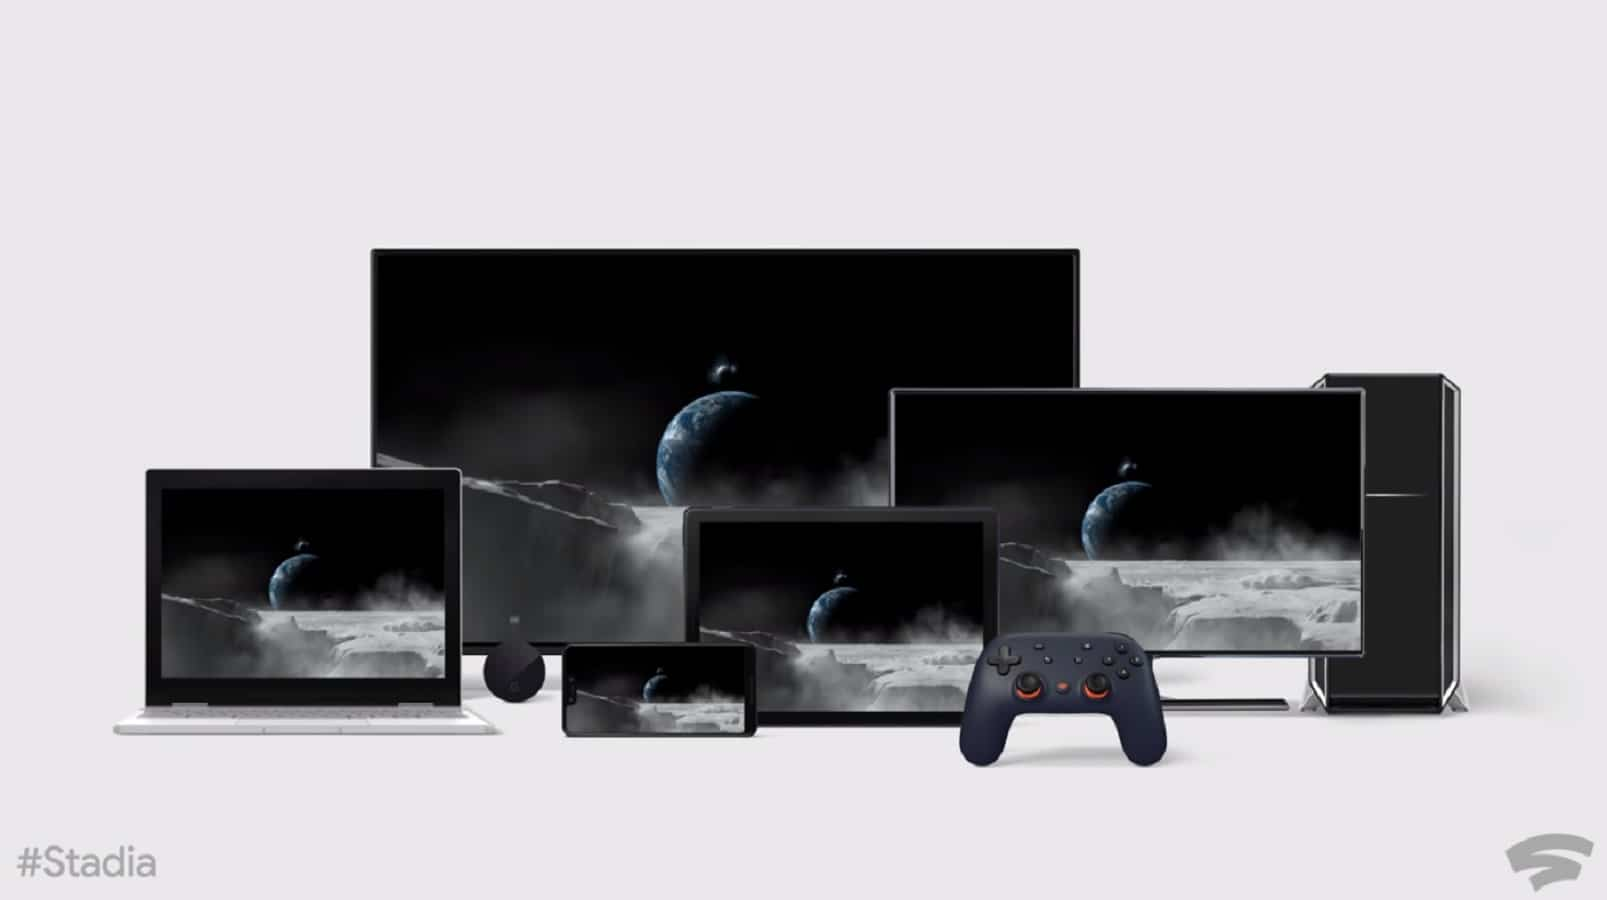 google stadia pro on multiple devices